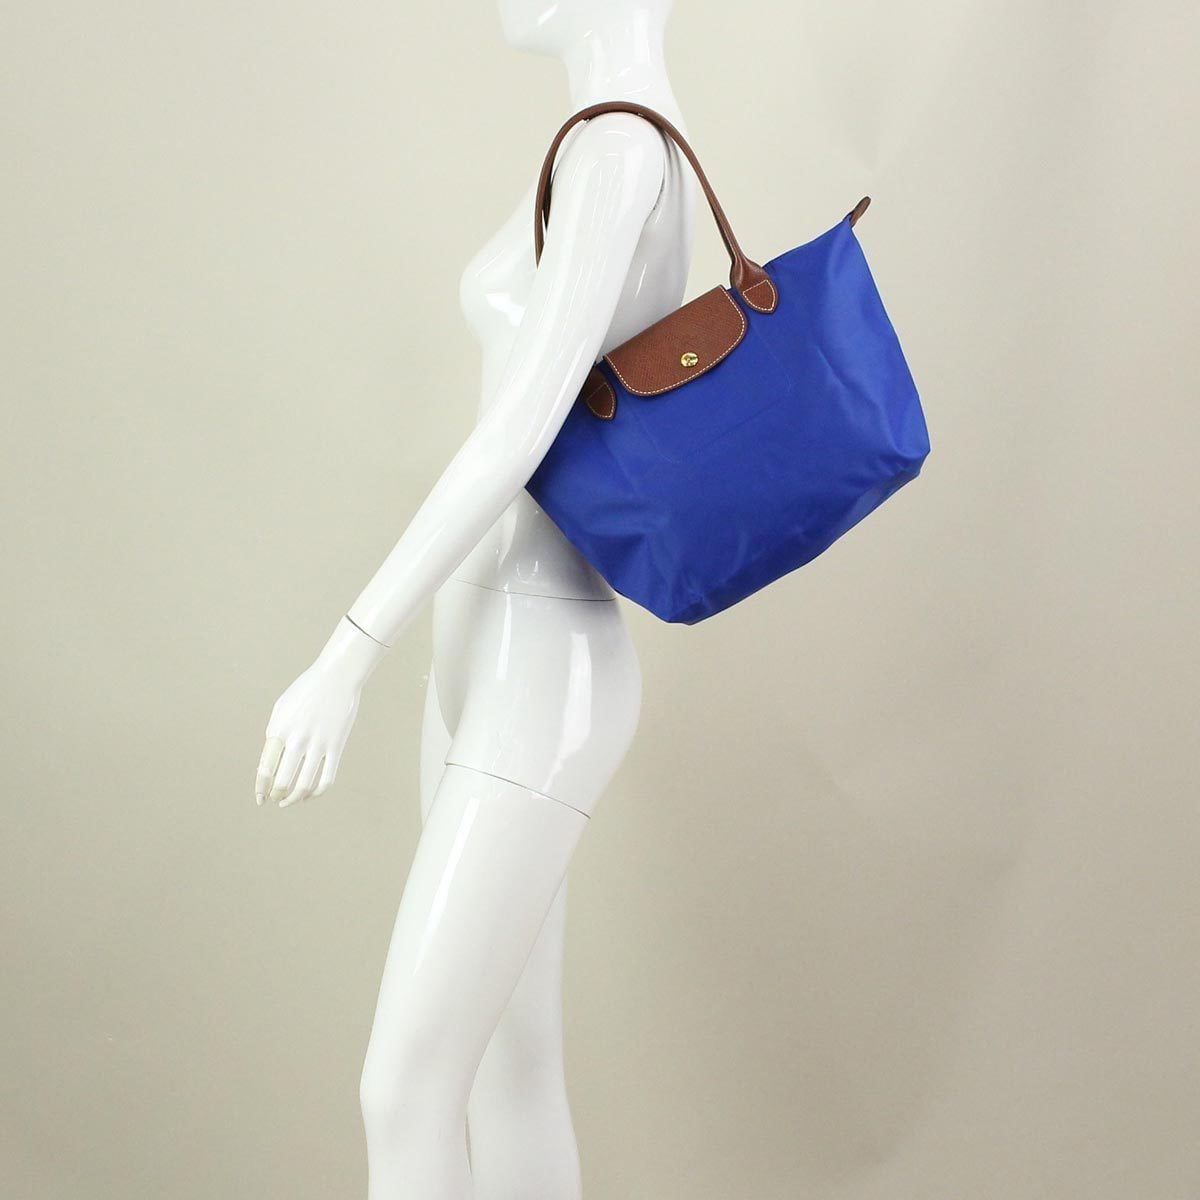 568083b137ff Shop Longchamp Le Pliage Blue Nylon Small Foldable Tote Bag - Free Shipping  Today - Overstock - 13536933